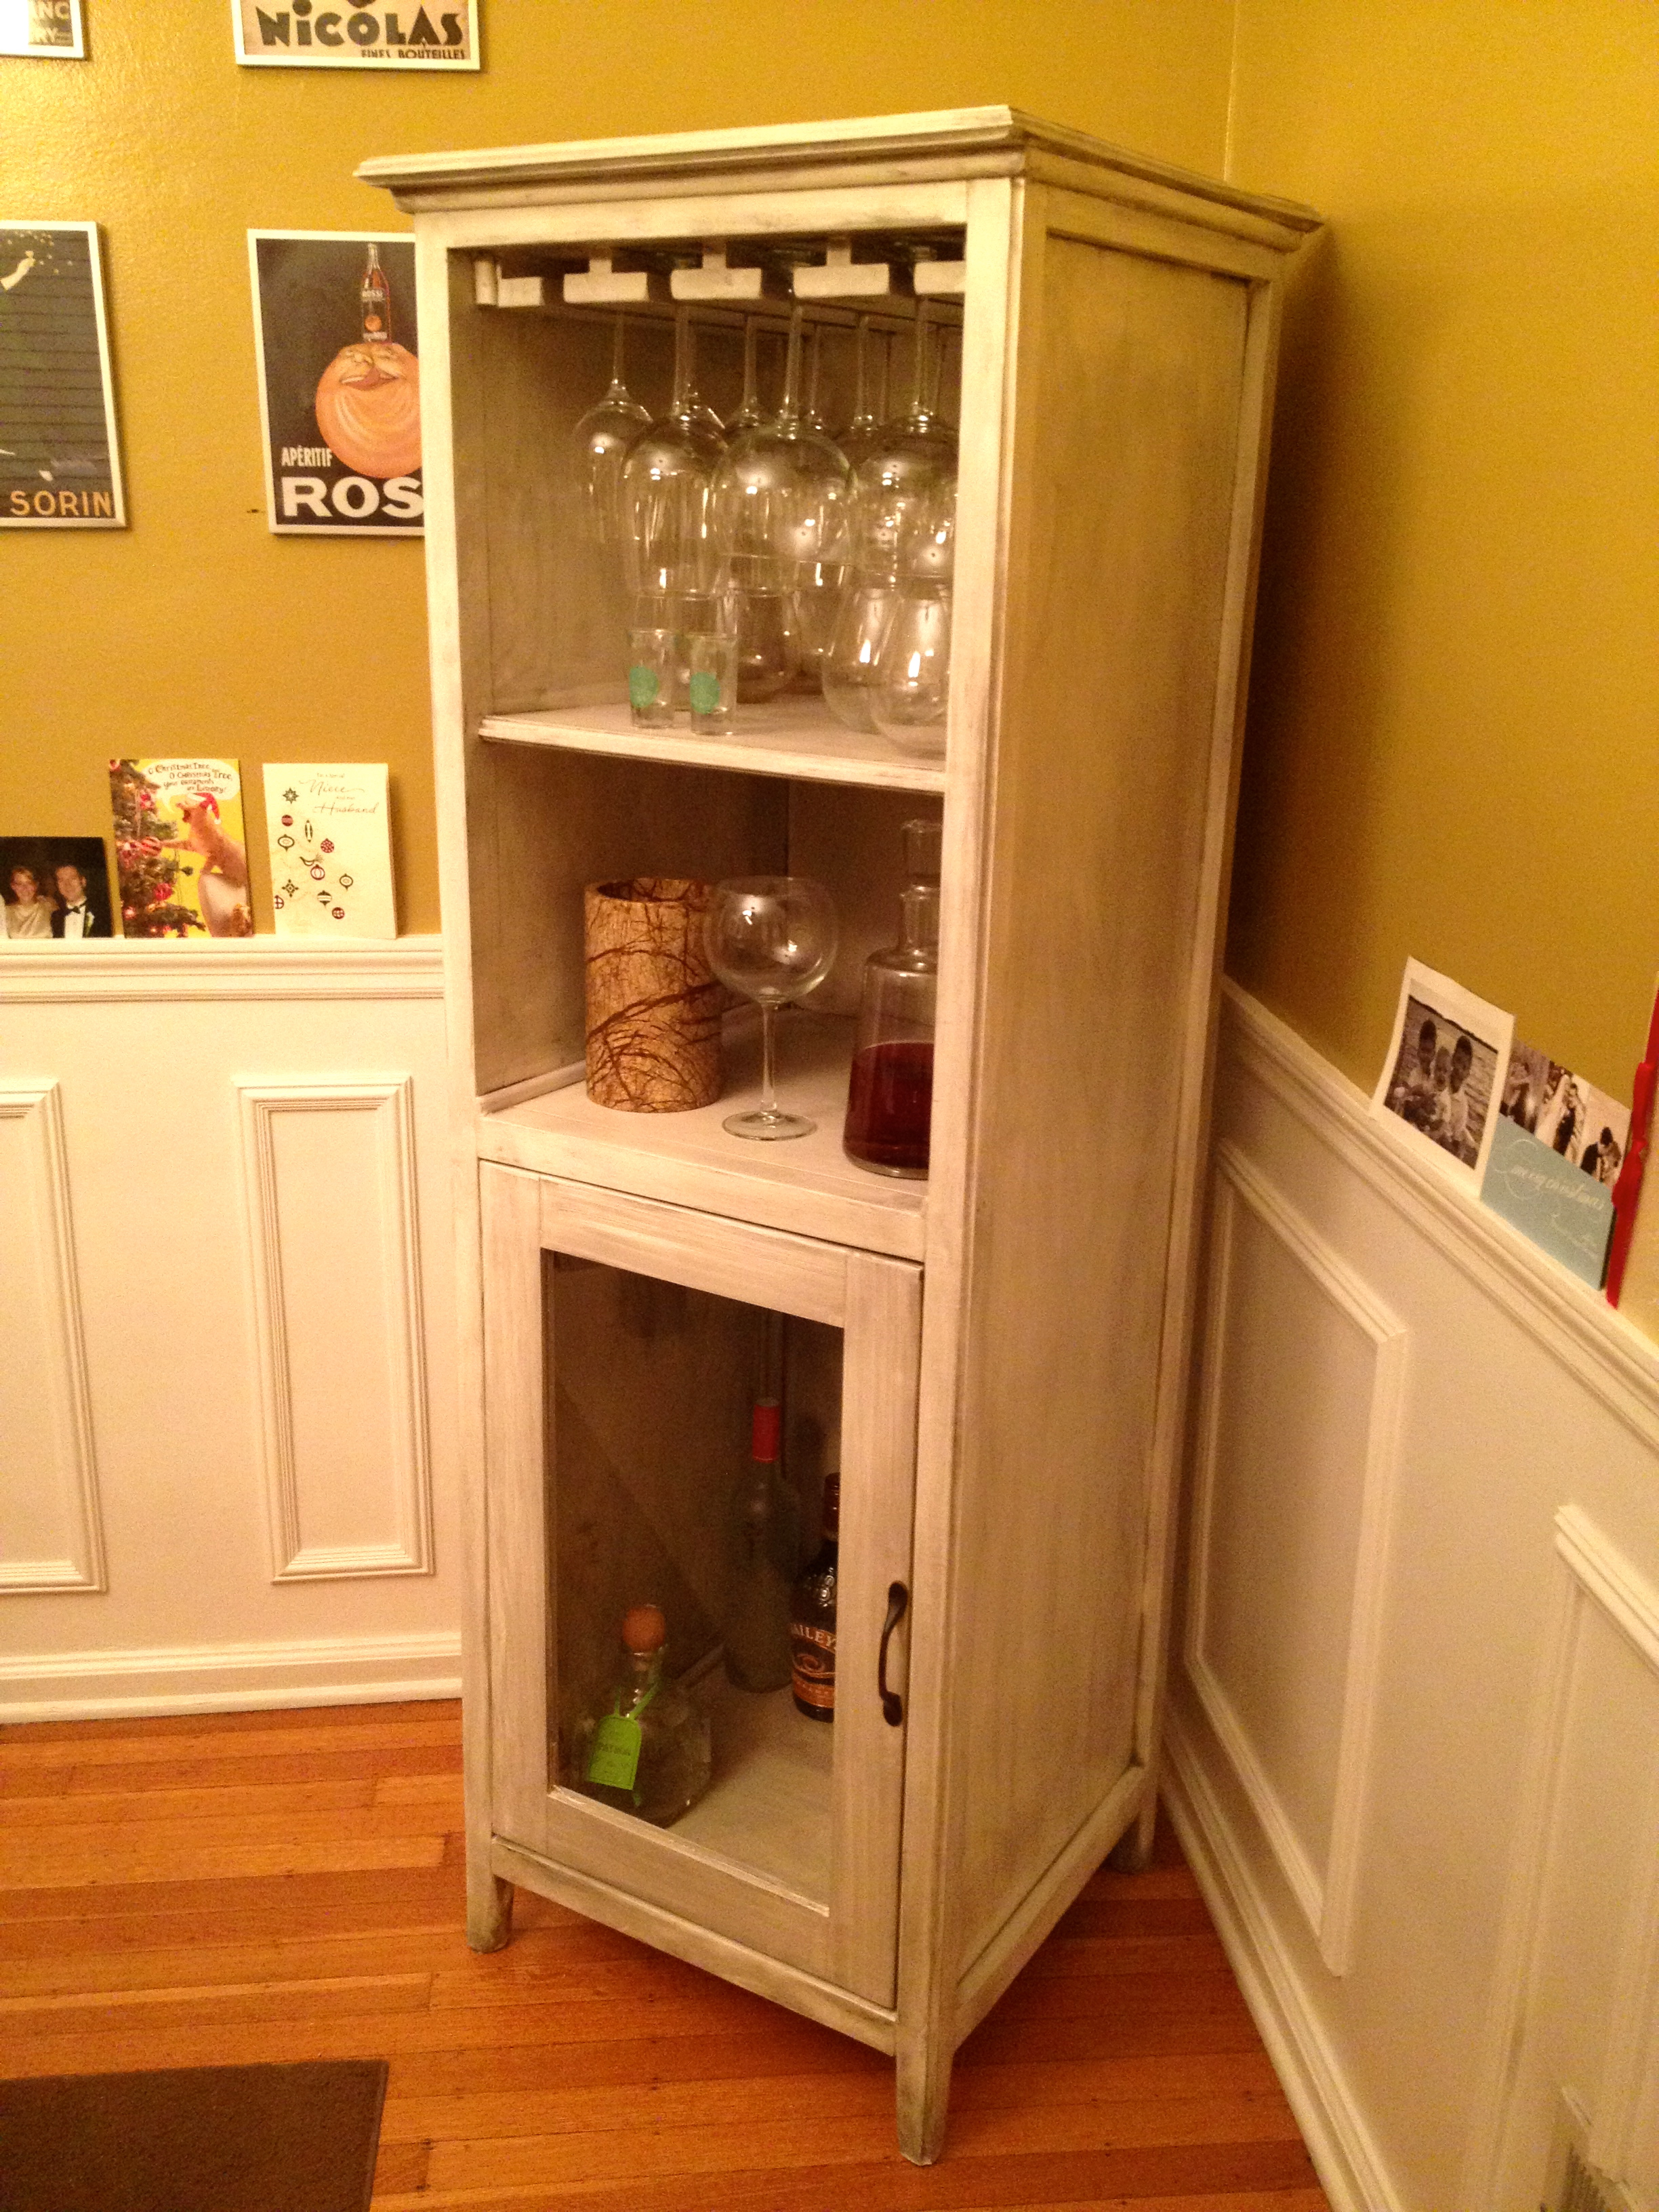 Download Plans for liquor cabinet Plans DIY wood for crafting | raspy24zvb